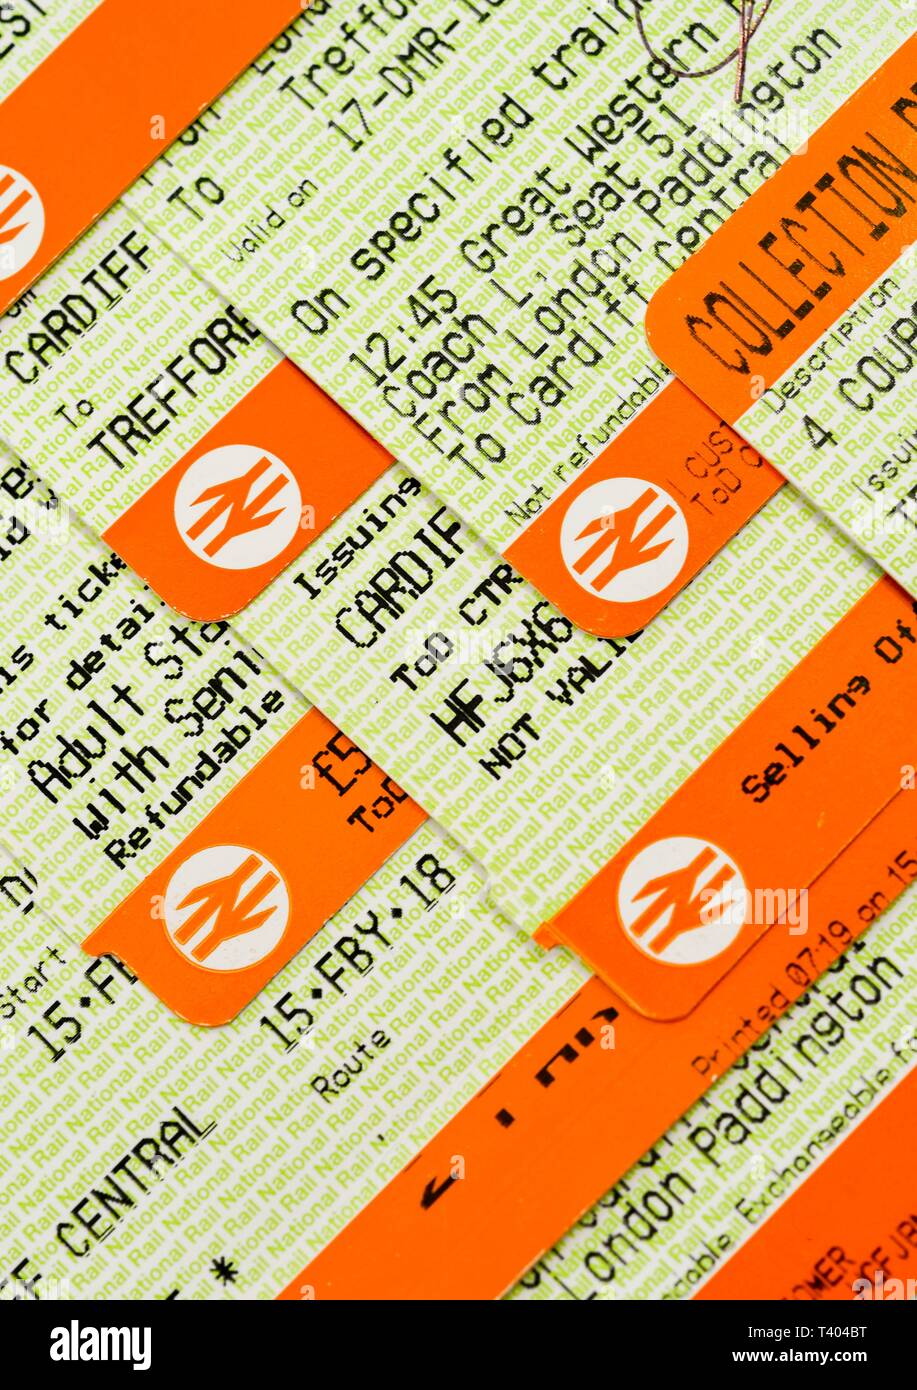 CARDIFF, WALES - APRIL 2019: Close up view of traditional printed rail tickets with the National Rail logo. - Stock Image